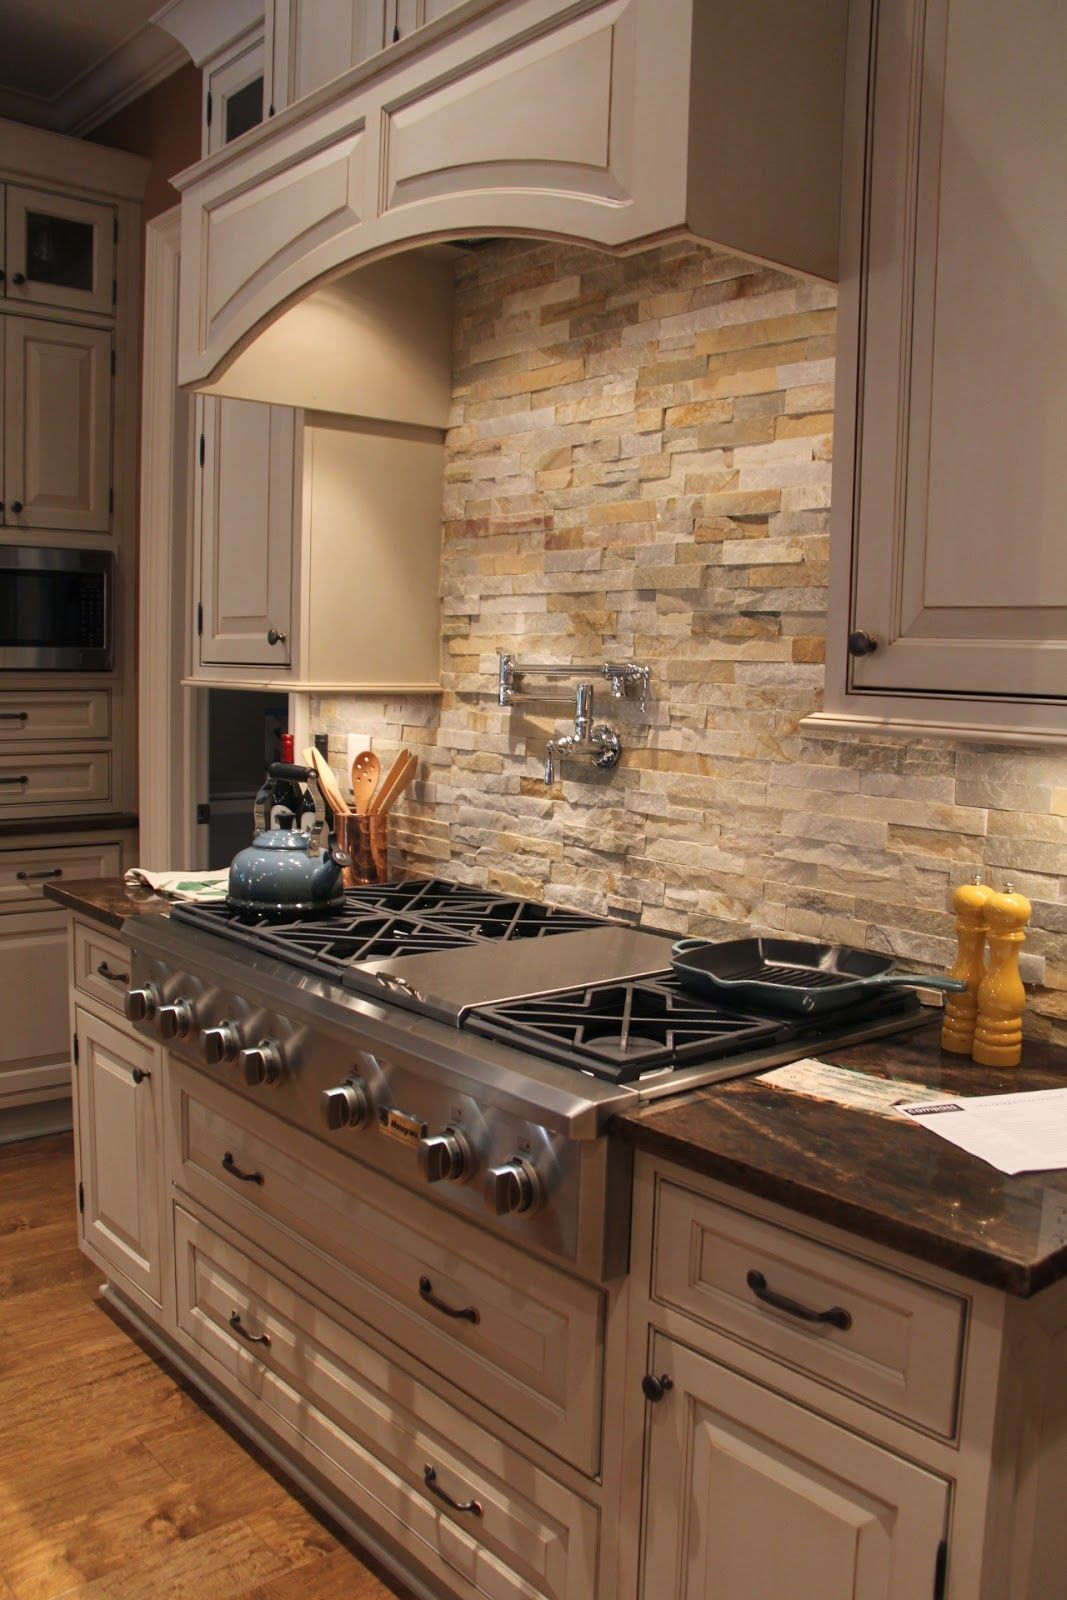 Thrift and shout my 2014 parade of homes review columbus for Buy kitchen backsplash